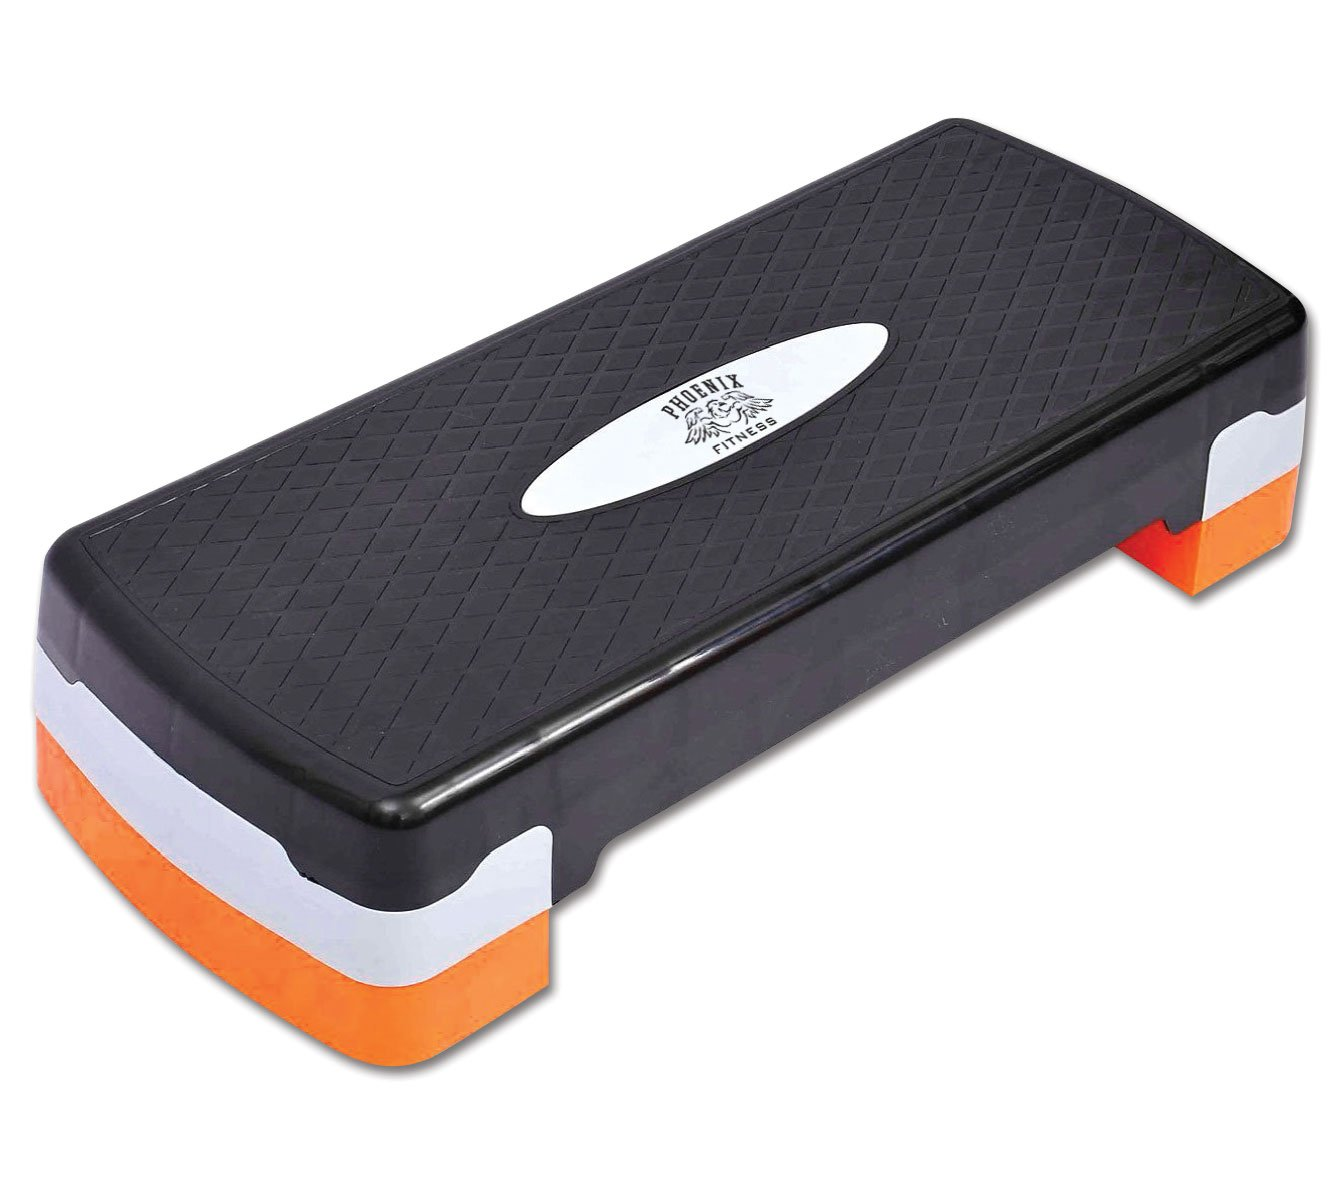 Phoenix Fitness Adjustable Aerobics Step Exercise Stepper Gym Yoga Board